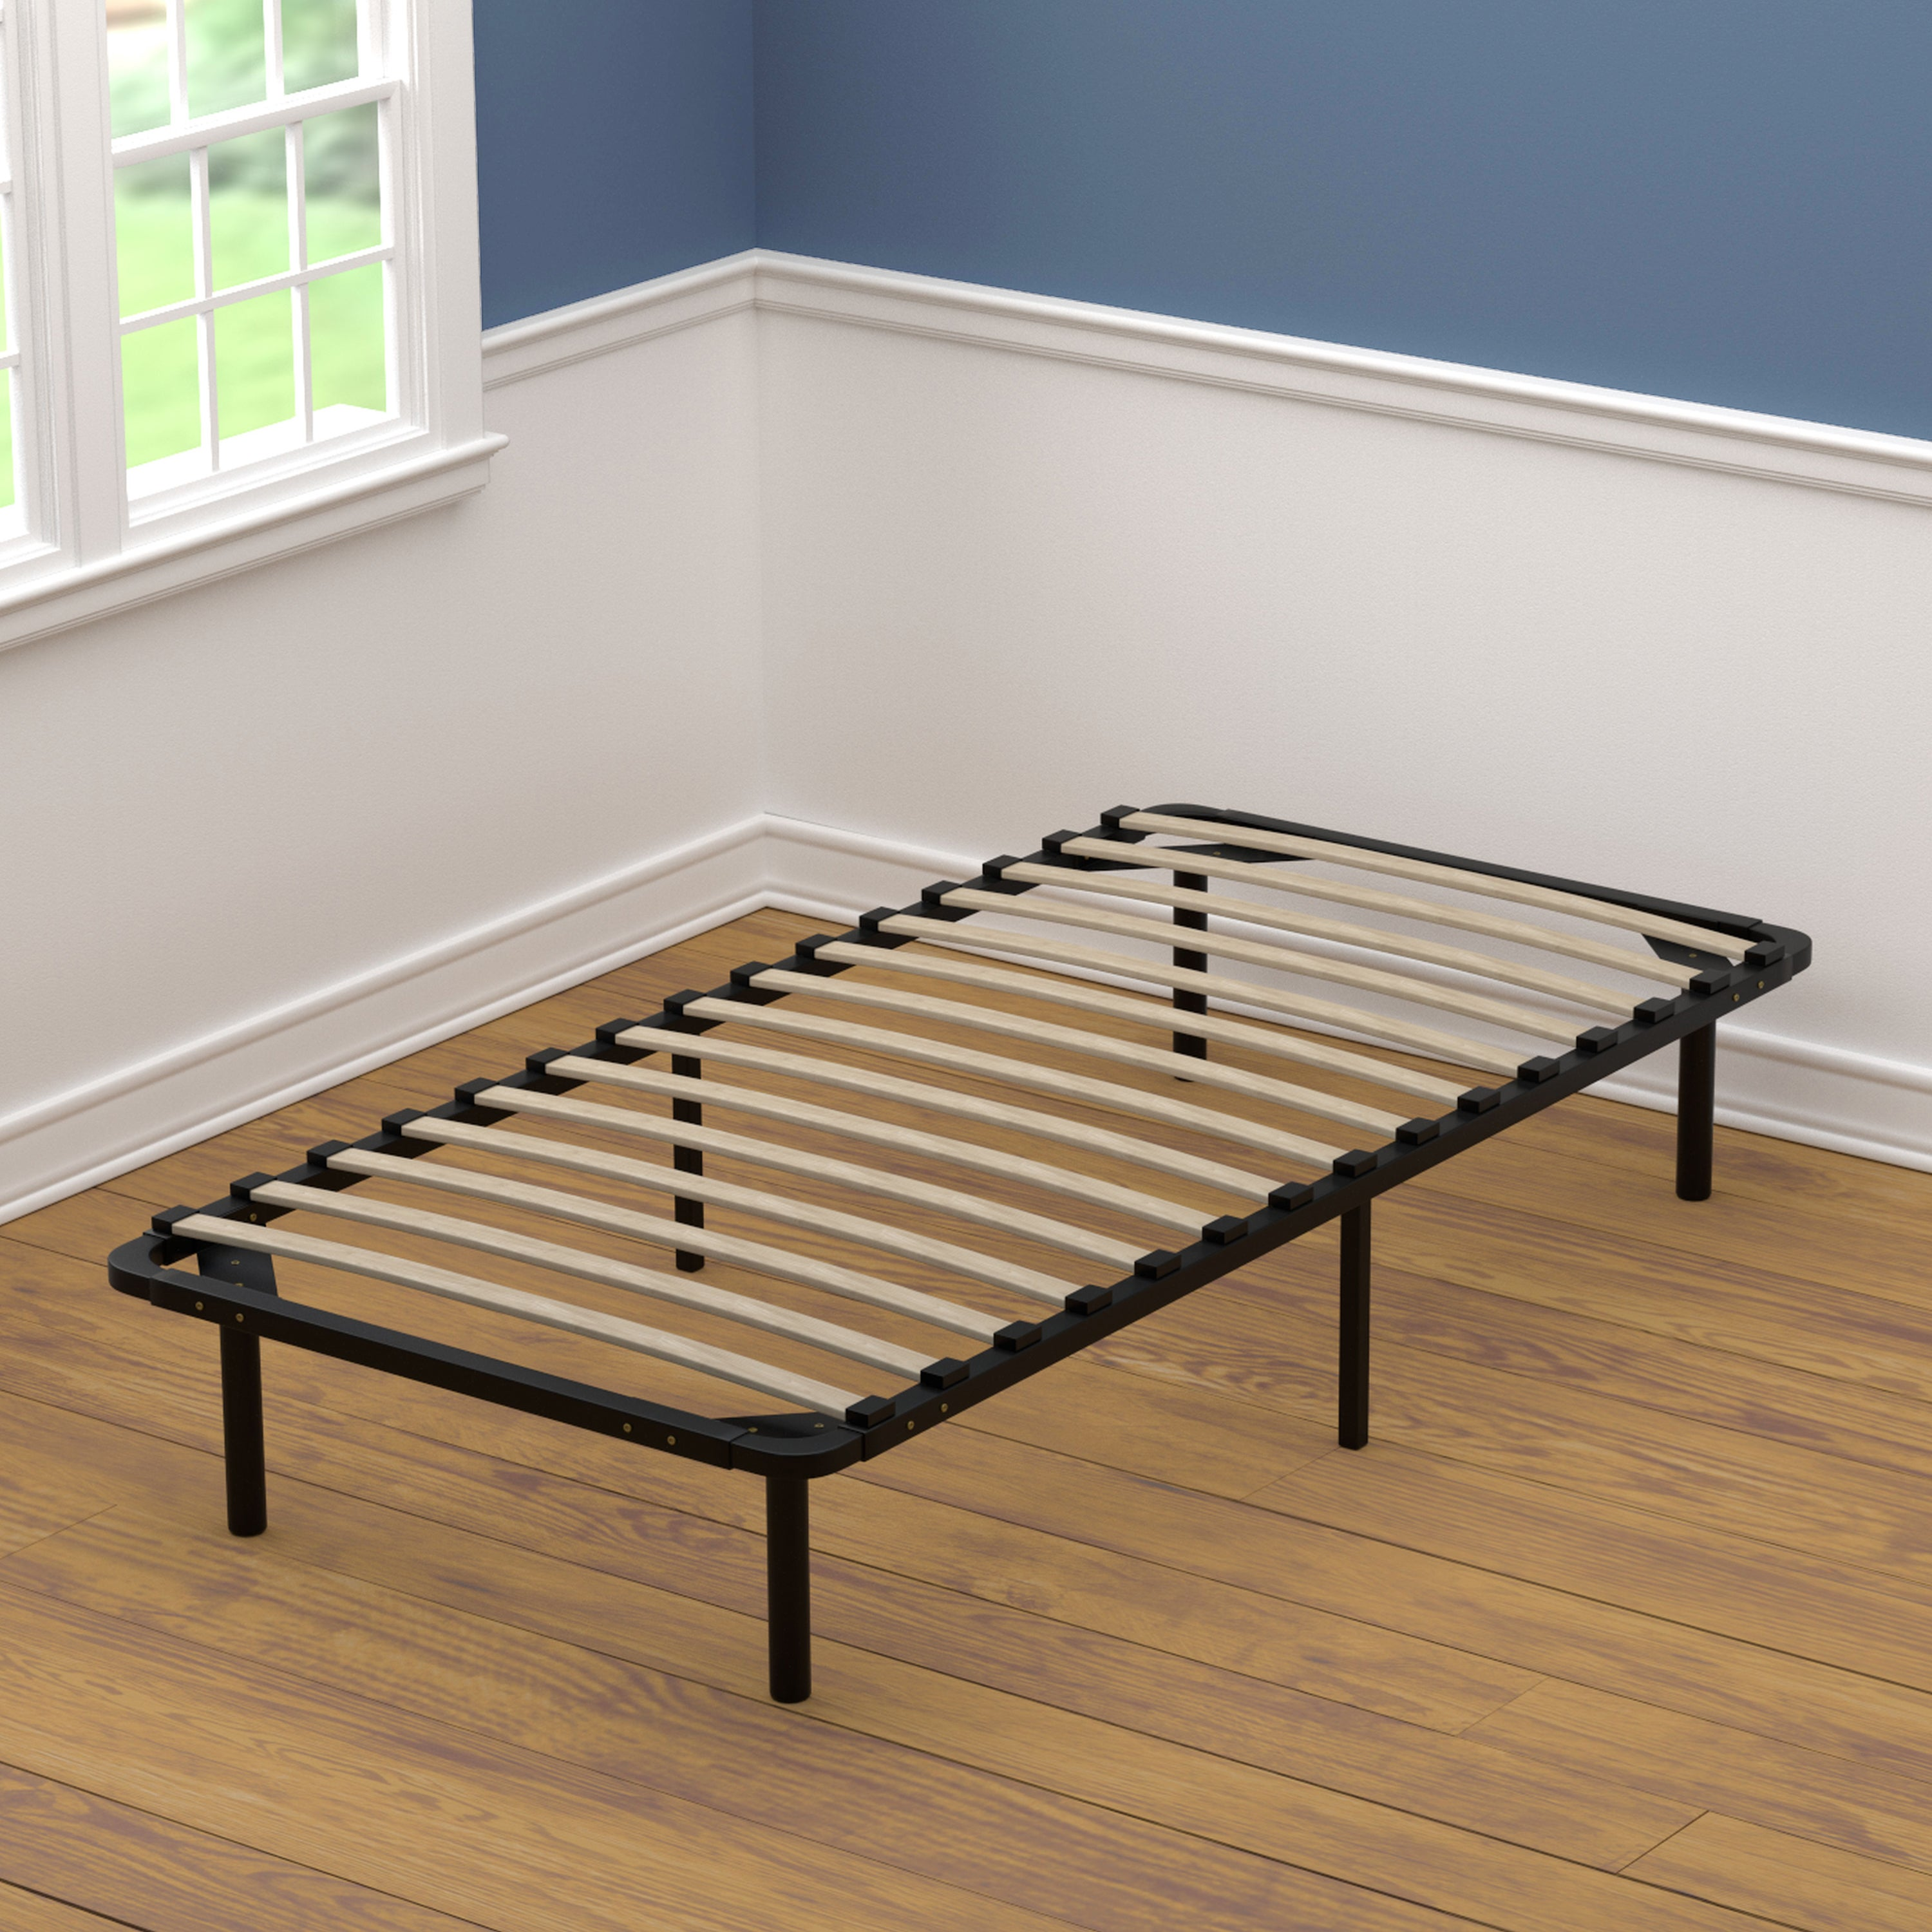 Handy Living Xl Twin Size Wood Slat Bed Frame On Free Shipping Today 12063139